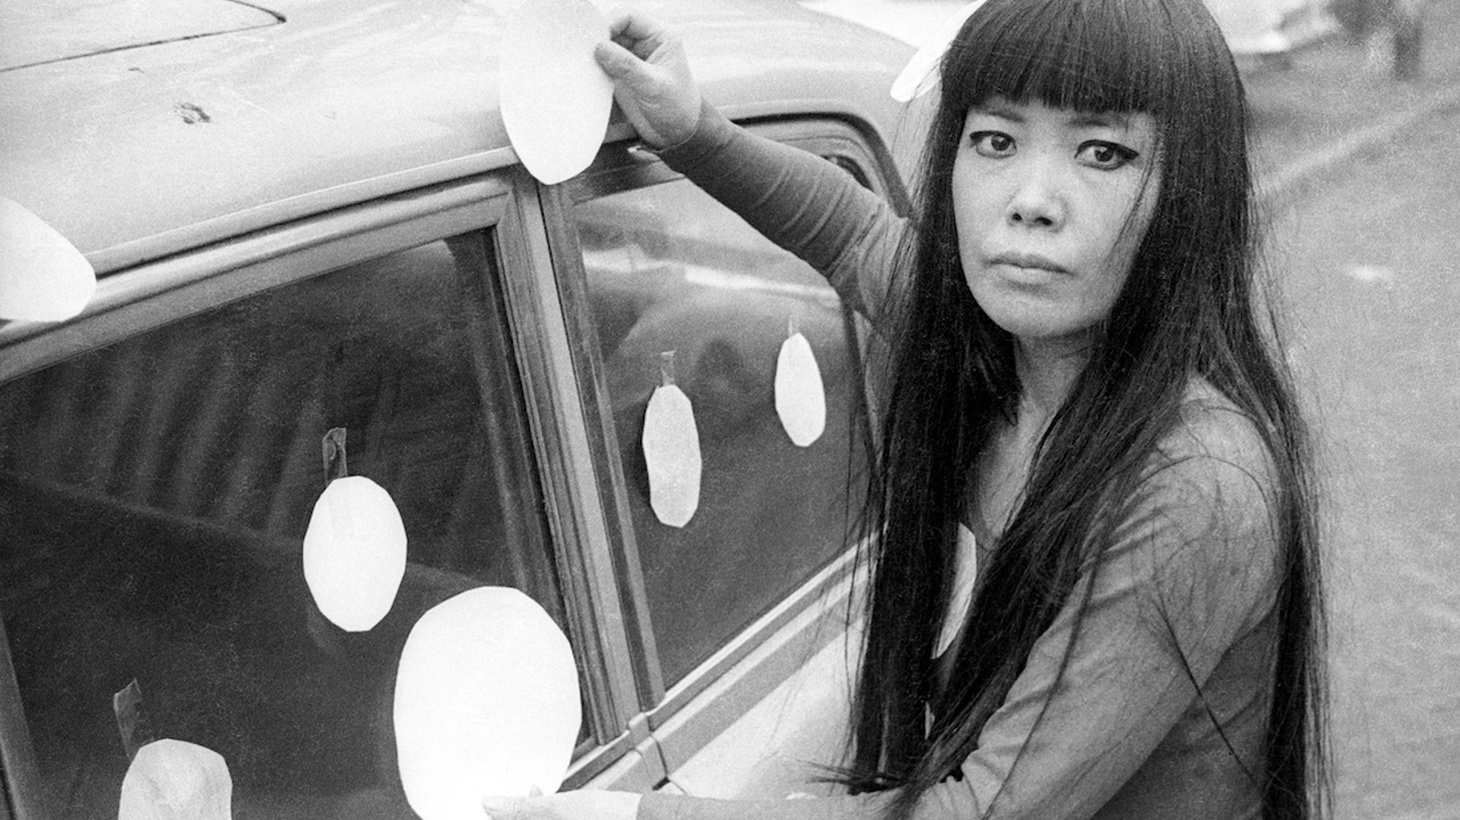 Edward Goldman talks about an exhibition of photographs by Irving Penn at Fahey/Klein Gallery, and a new documentary about Yayoi Kusama.